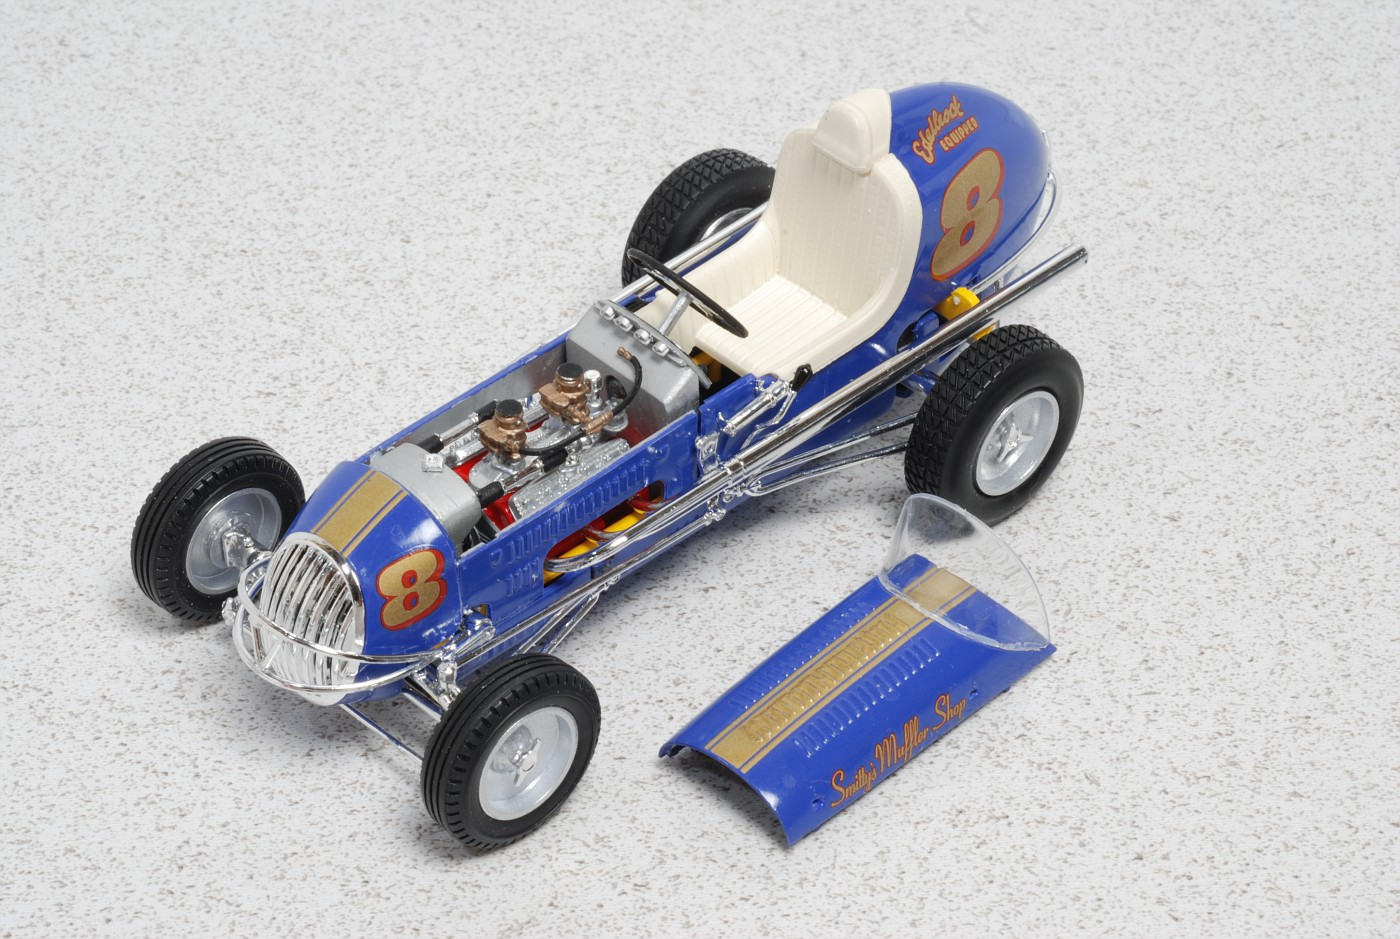 midget-racer-plans-pictures-of-clemintine-ford-tits